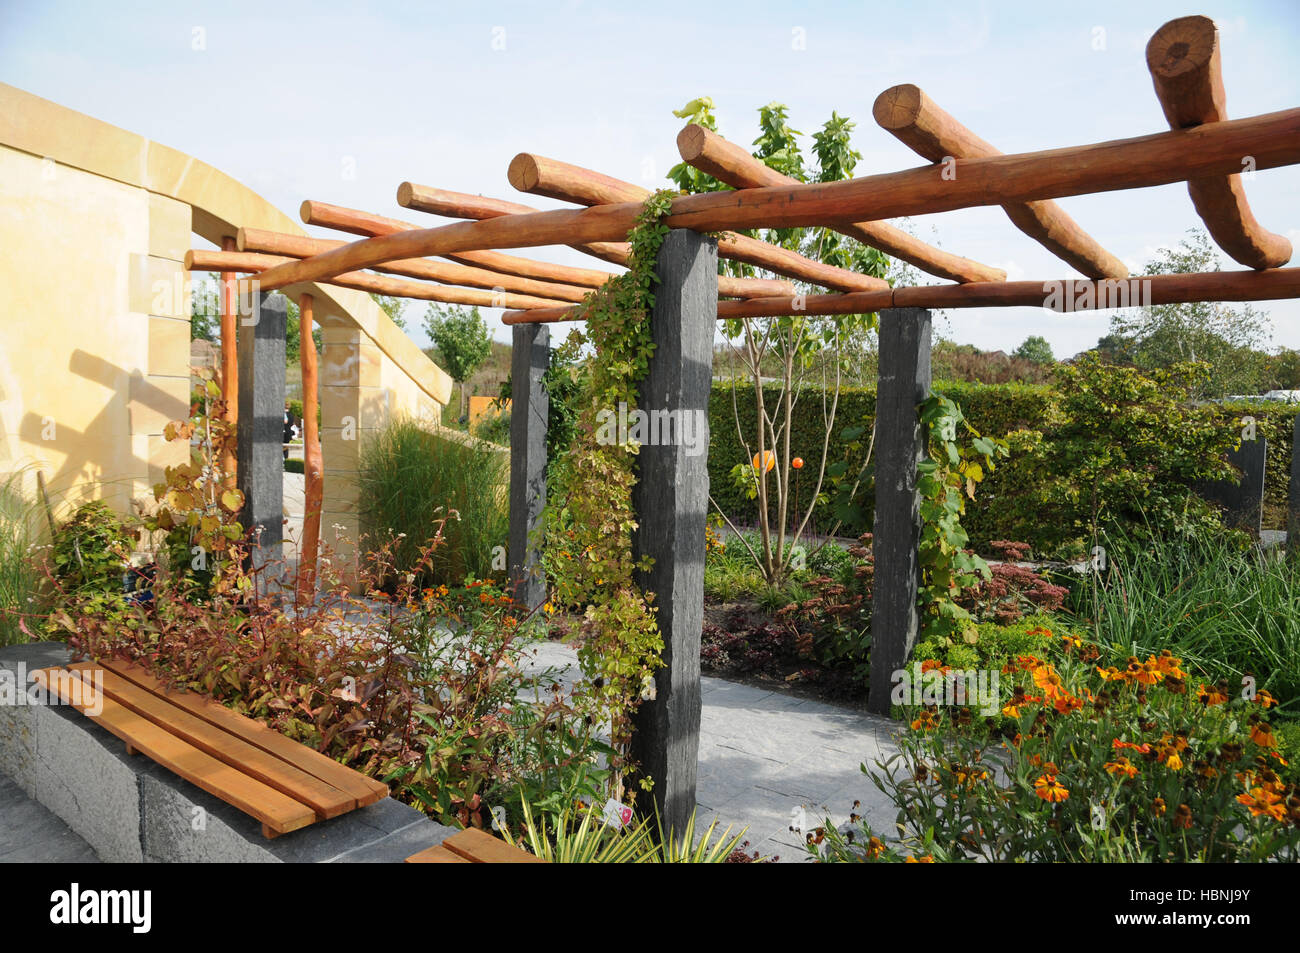 garten mit pergola aus stein und holz gemacht stockfoto bild 127709175 alamy. Black Bedroom Furniture Sets. Home Design Ideas